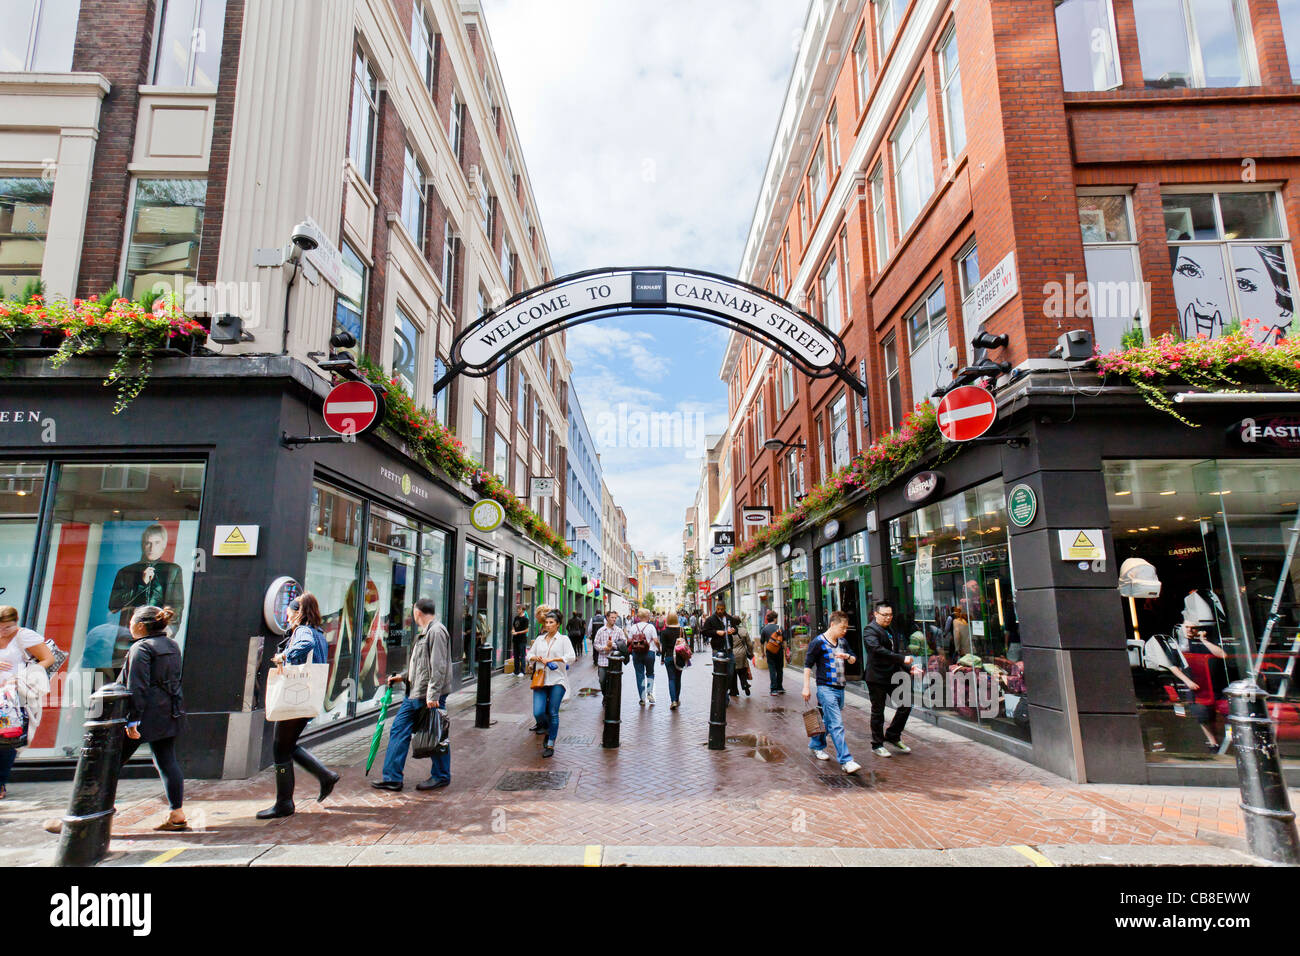 People, Shoppers, Pedestrians on Carnaby Street, London, England. Stock Photo